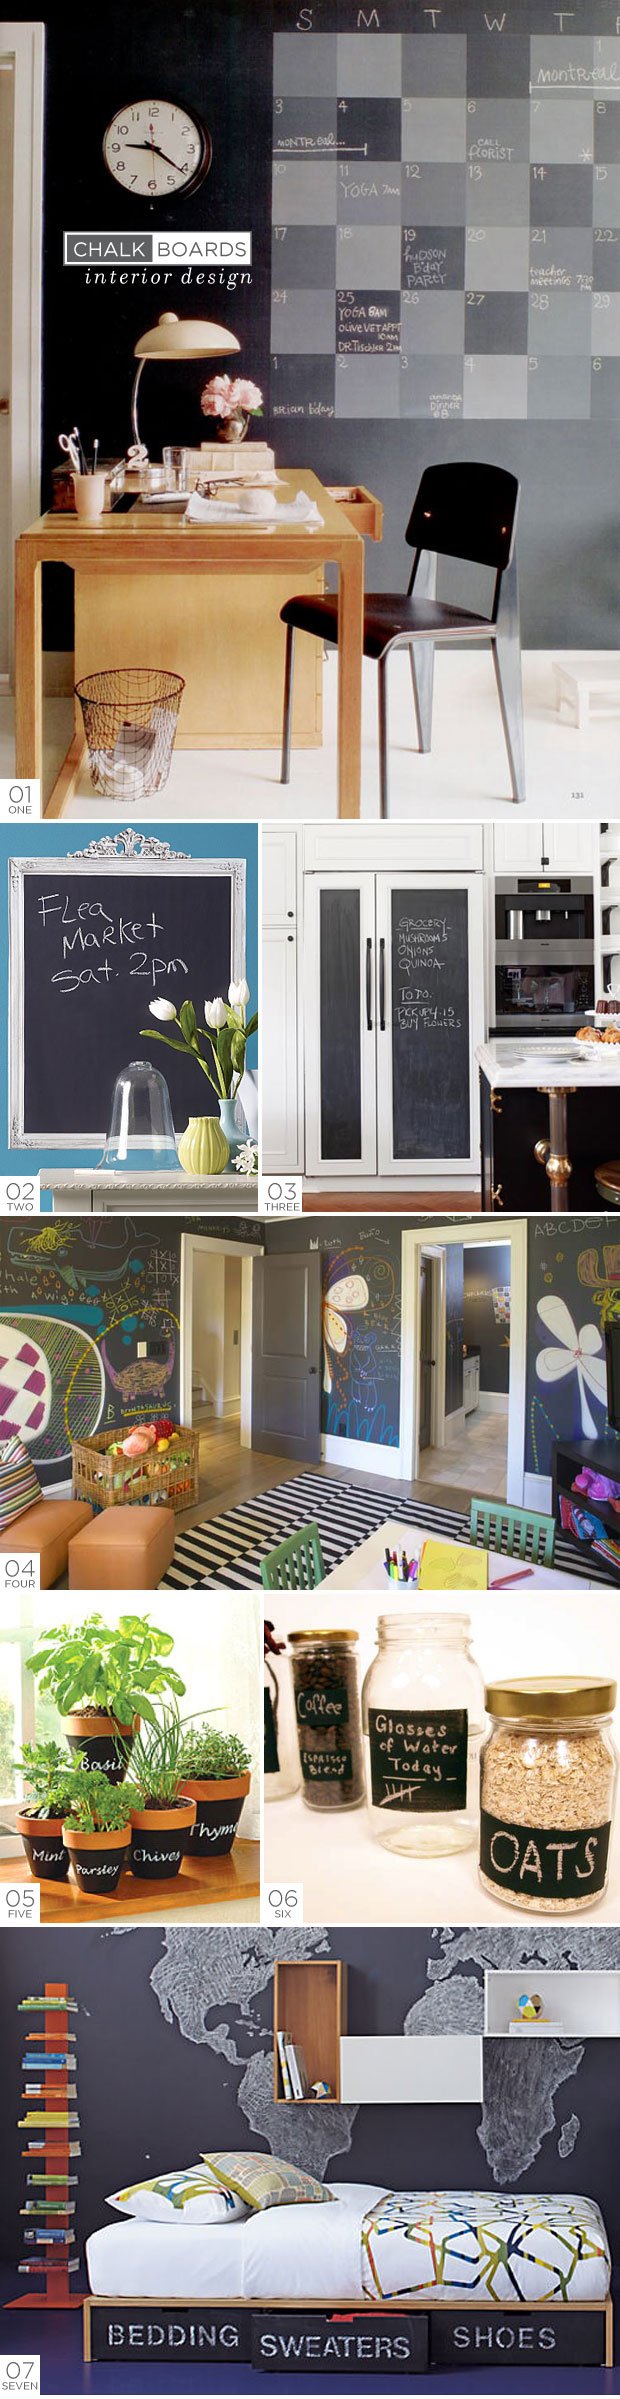 Chalkboards - Interior Design